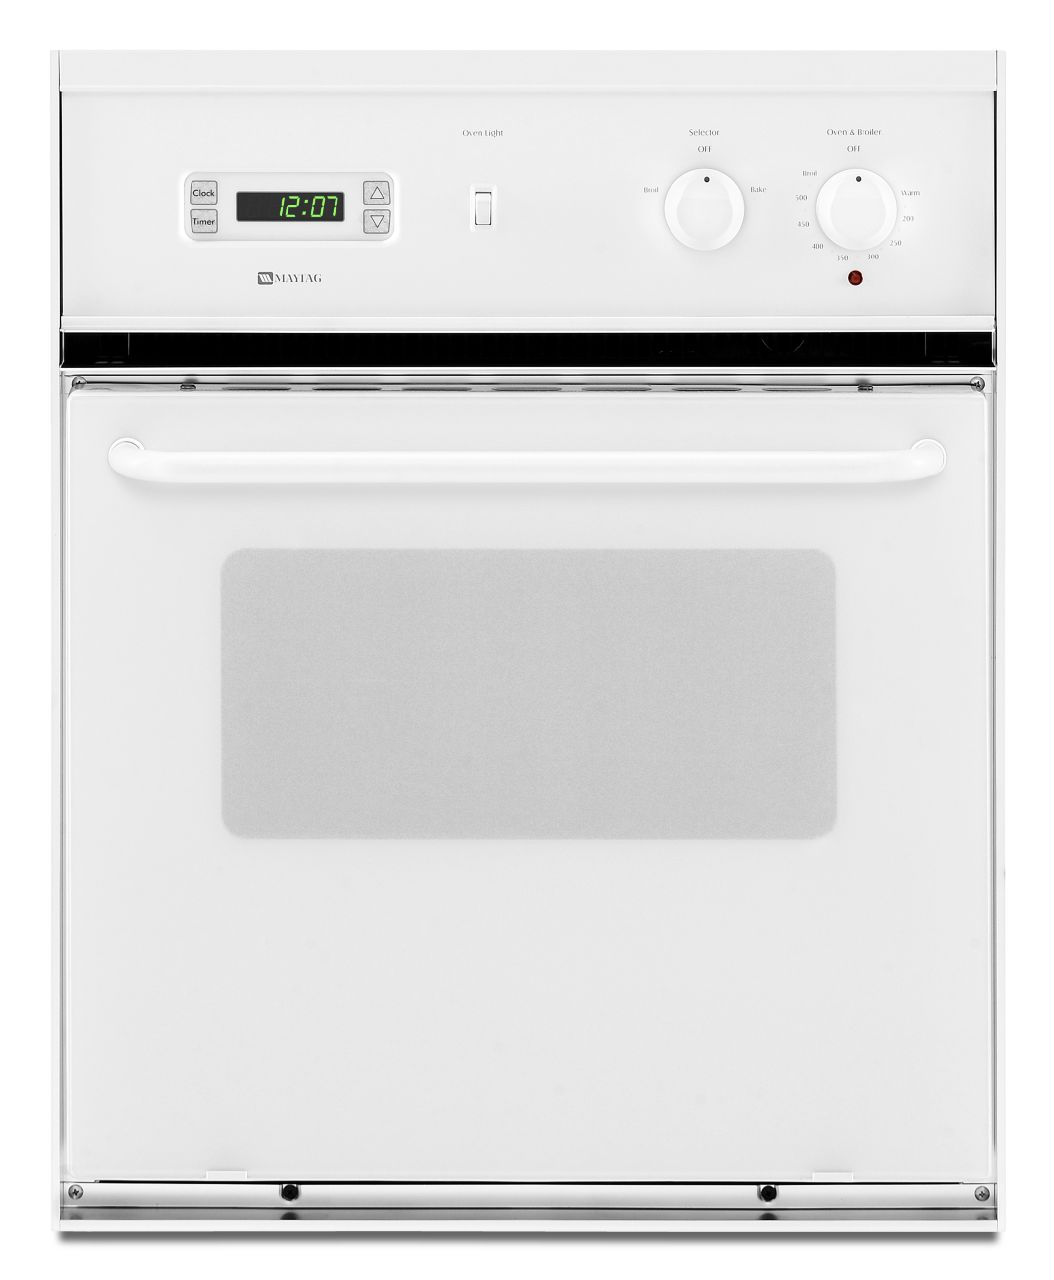 Maytag Range/Stove/Oven Model CWE4100ACE10 Parts